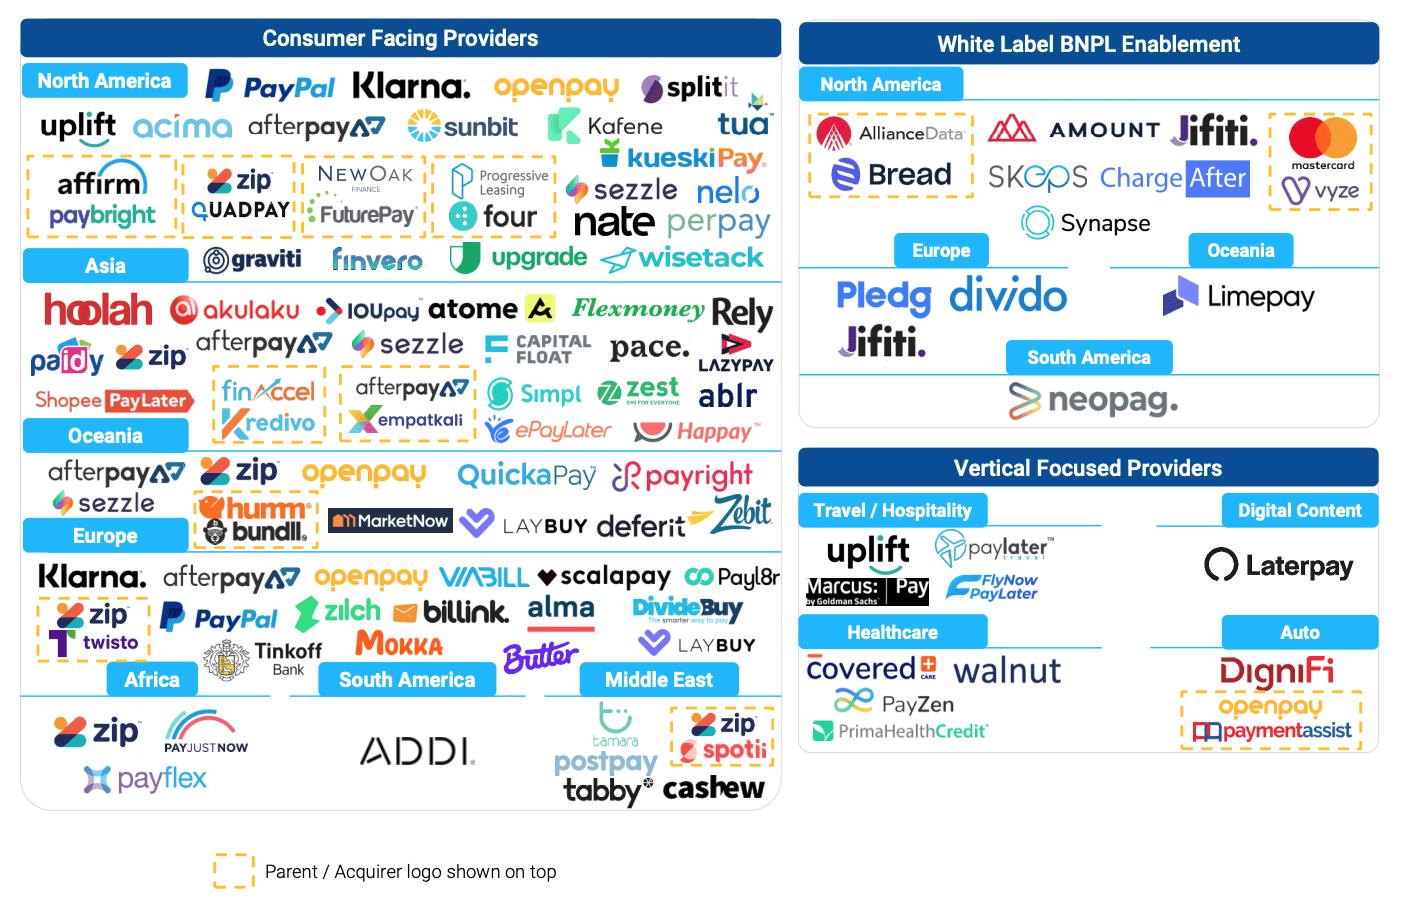 Global Buy Now Pay Later Landscape, Source: FT Partners, July 2021